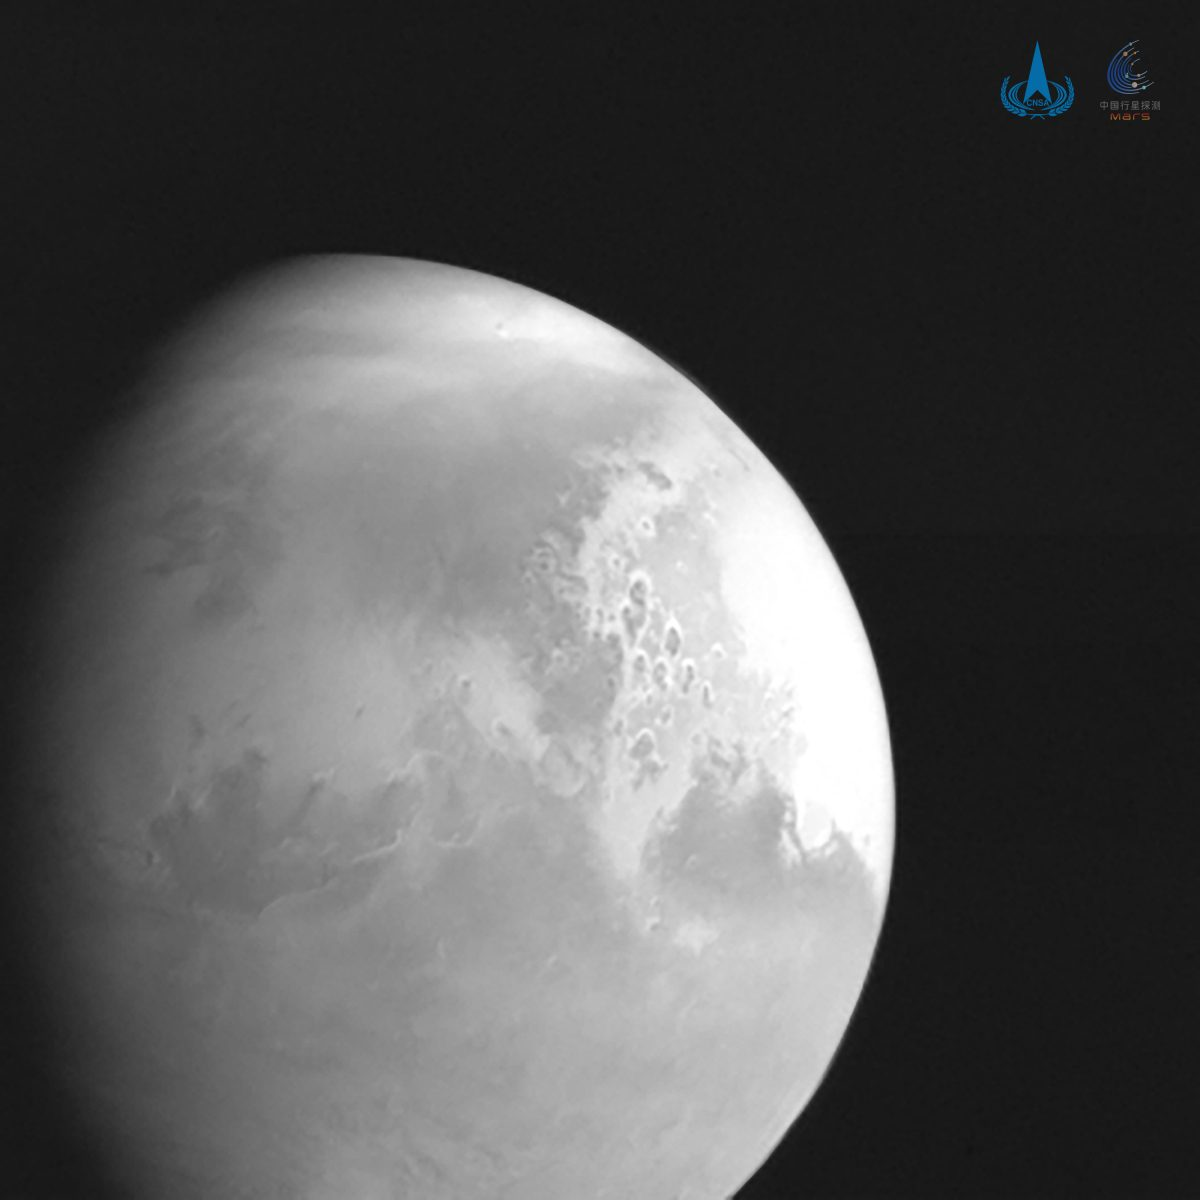 Marte (Foto: China National Space Administration)